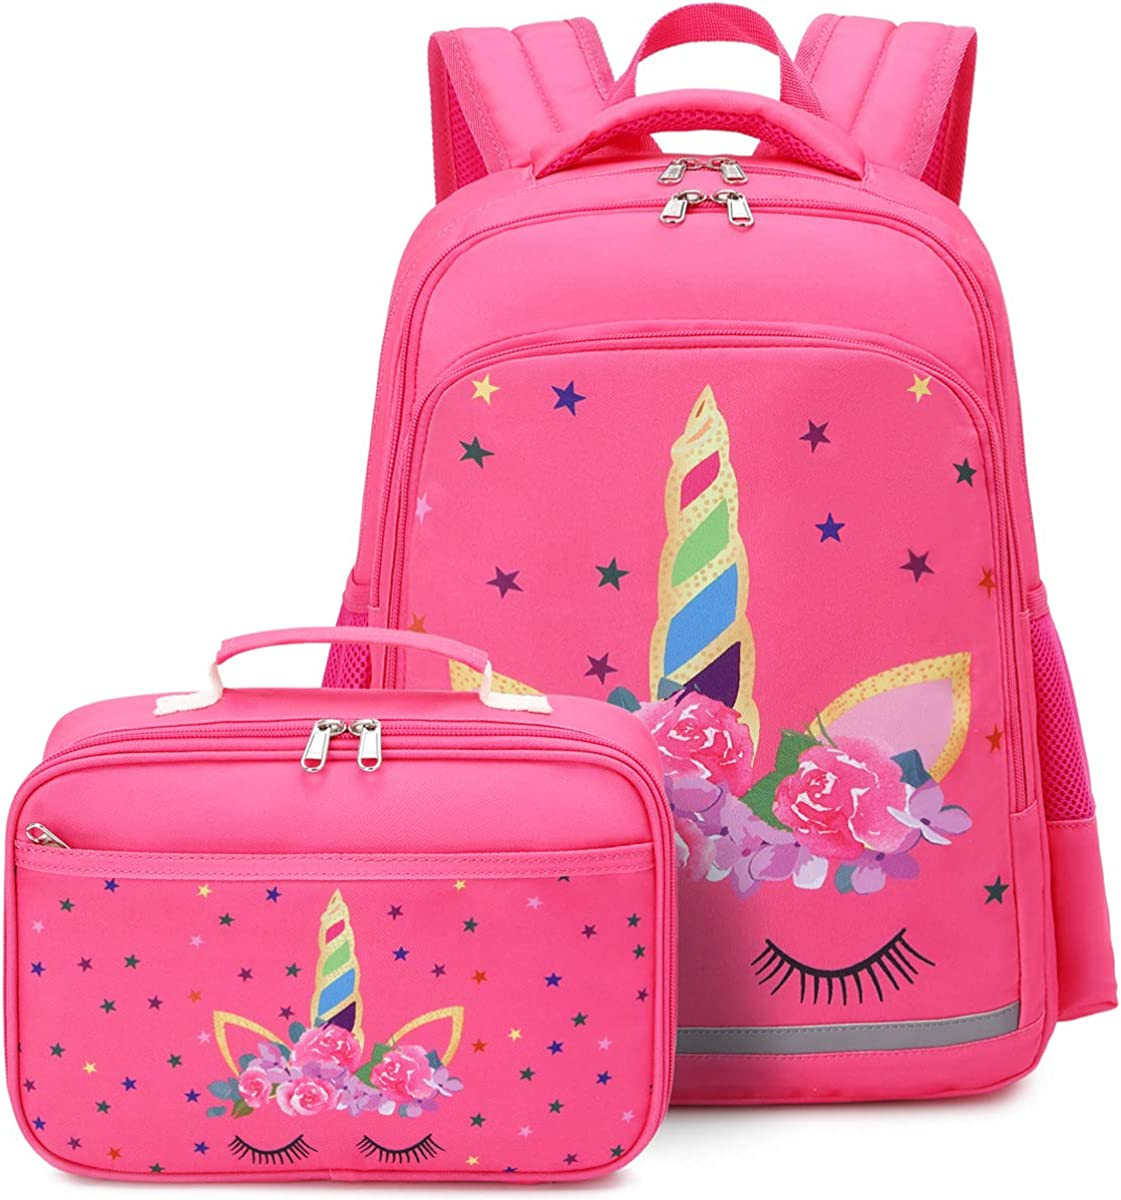 CAMTOP Backpack for Kids Girls School Backpack with Lunch Box Preschool Kindergarten BookBag Set